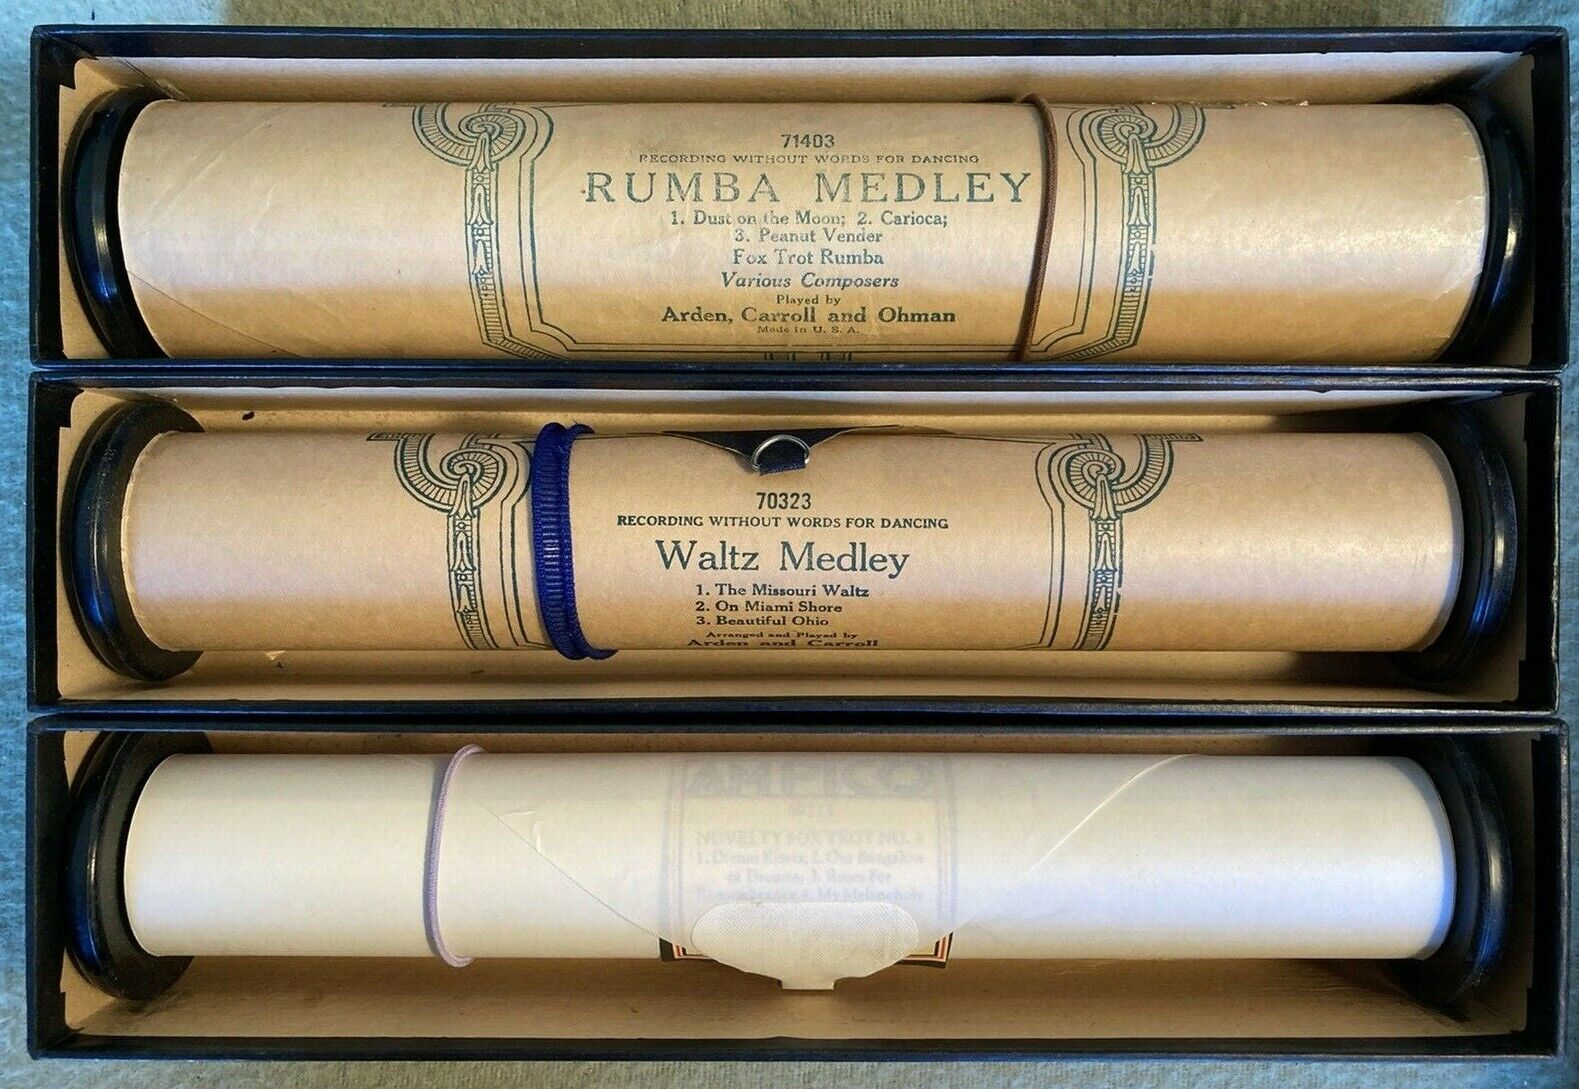 Vintage Ampico Player Piano Rolls, Previously Played - Bundle Of 3 Rolls - $20.63